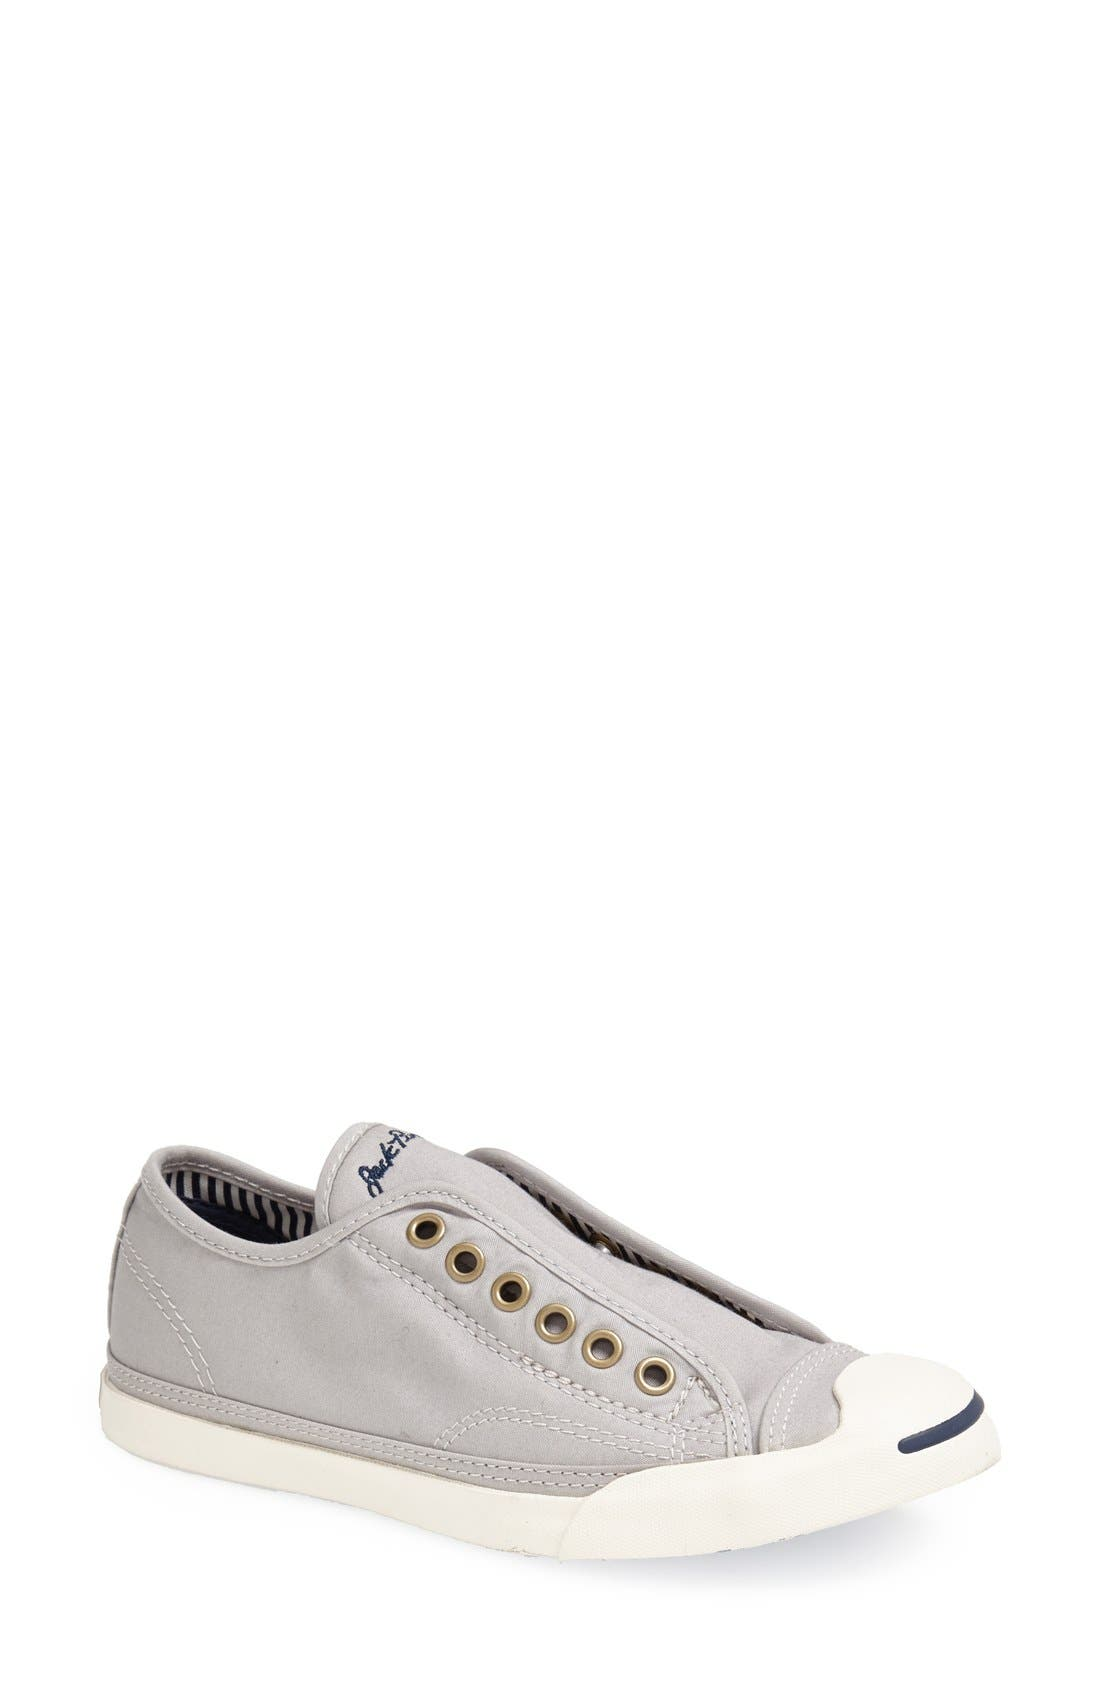 Main Image - Converse 'Jack Purcell LP' Sneaker (Women)